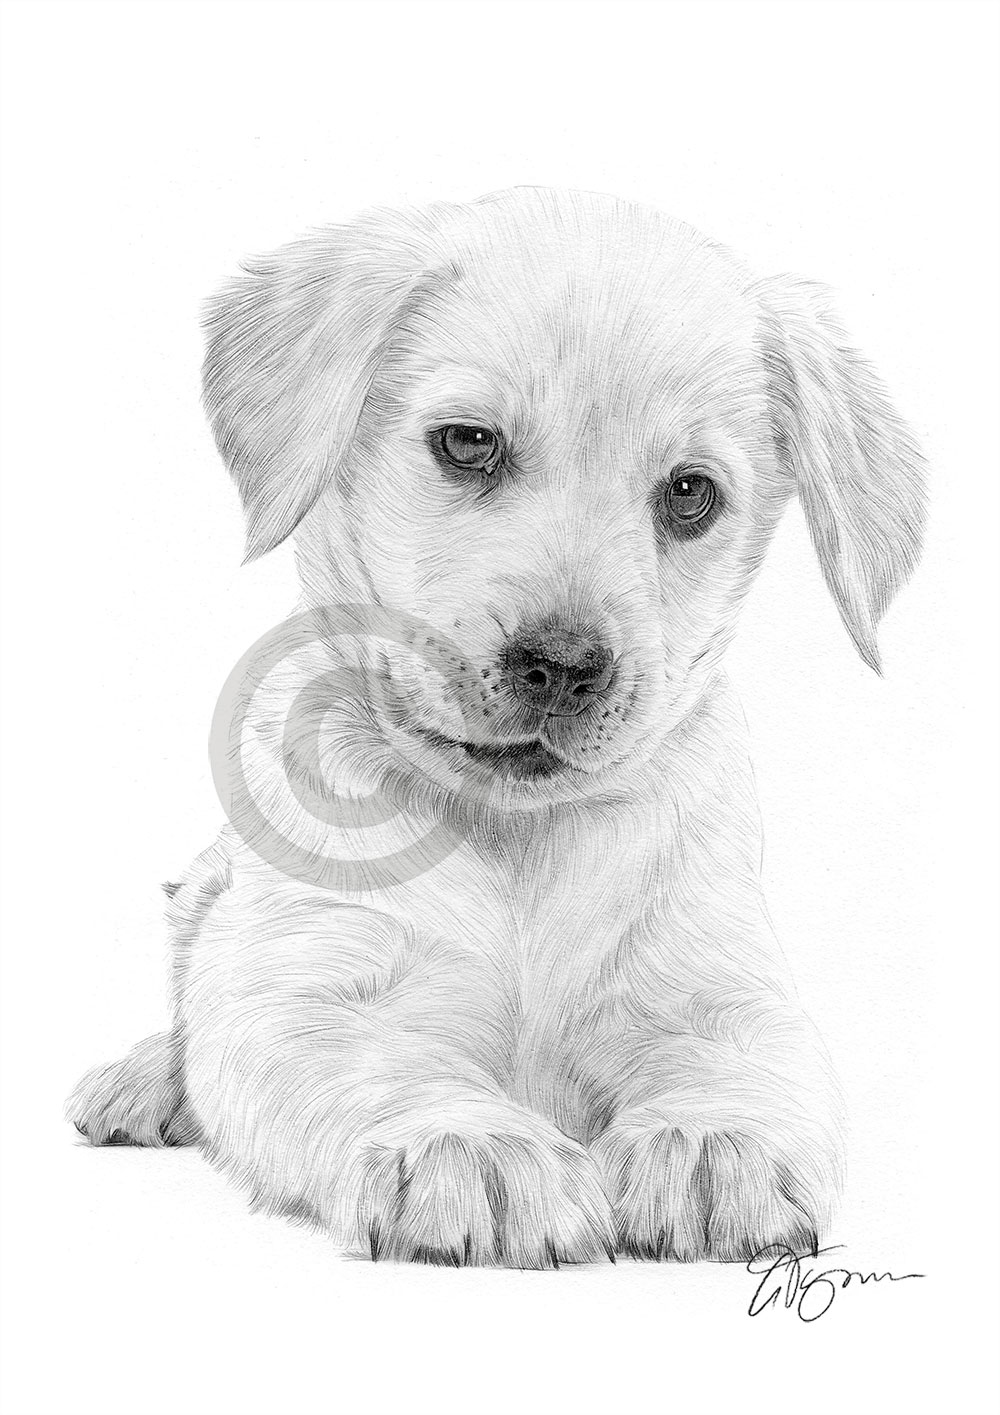 Labrador Retriever Puppy Dog Pencil Drawing Artwork Print A4 Size Pet Portrait Ebay